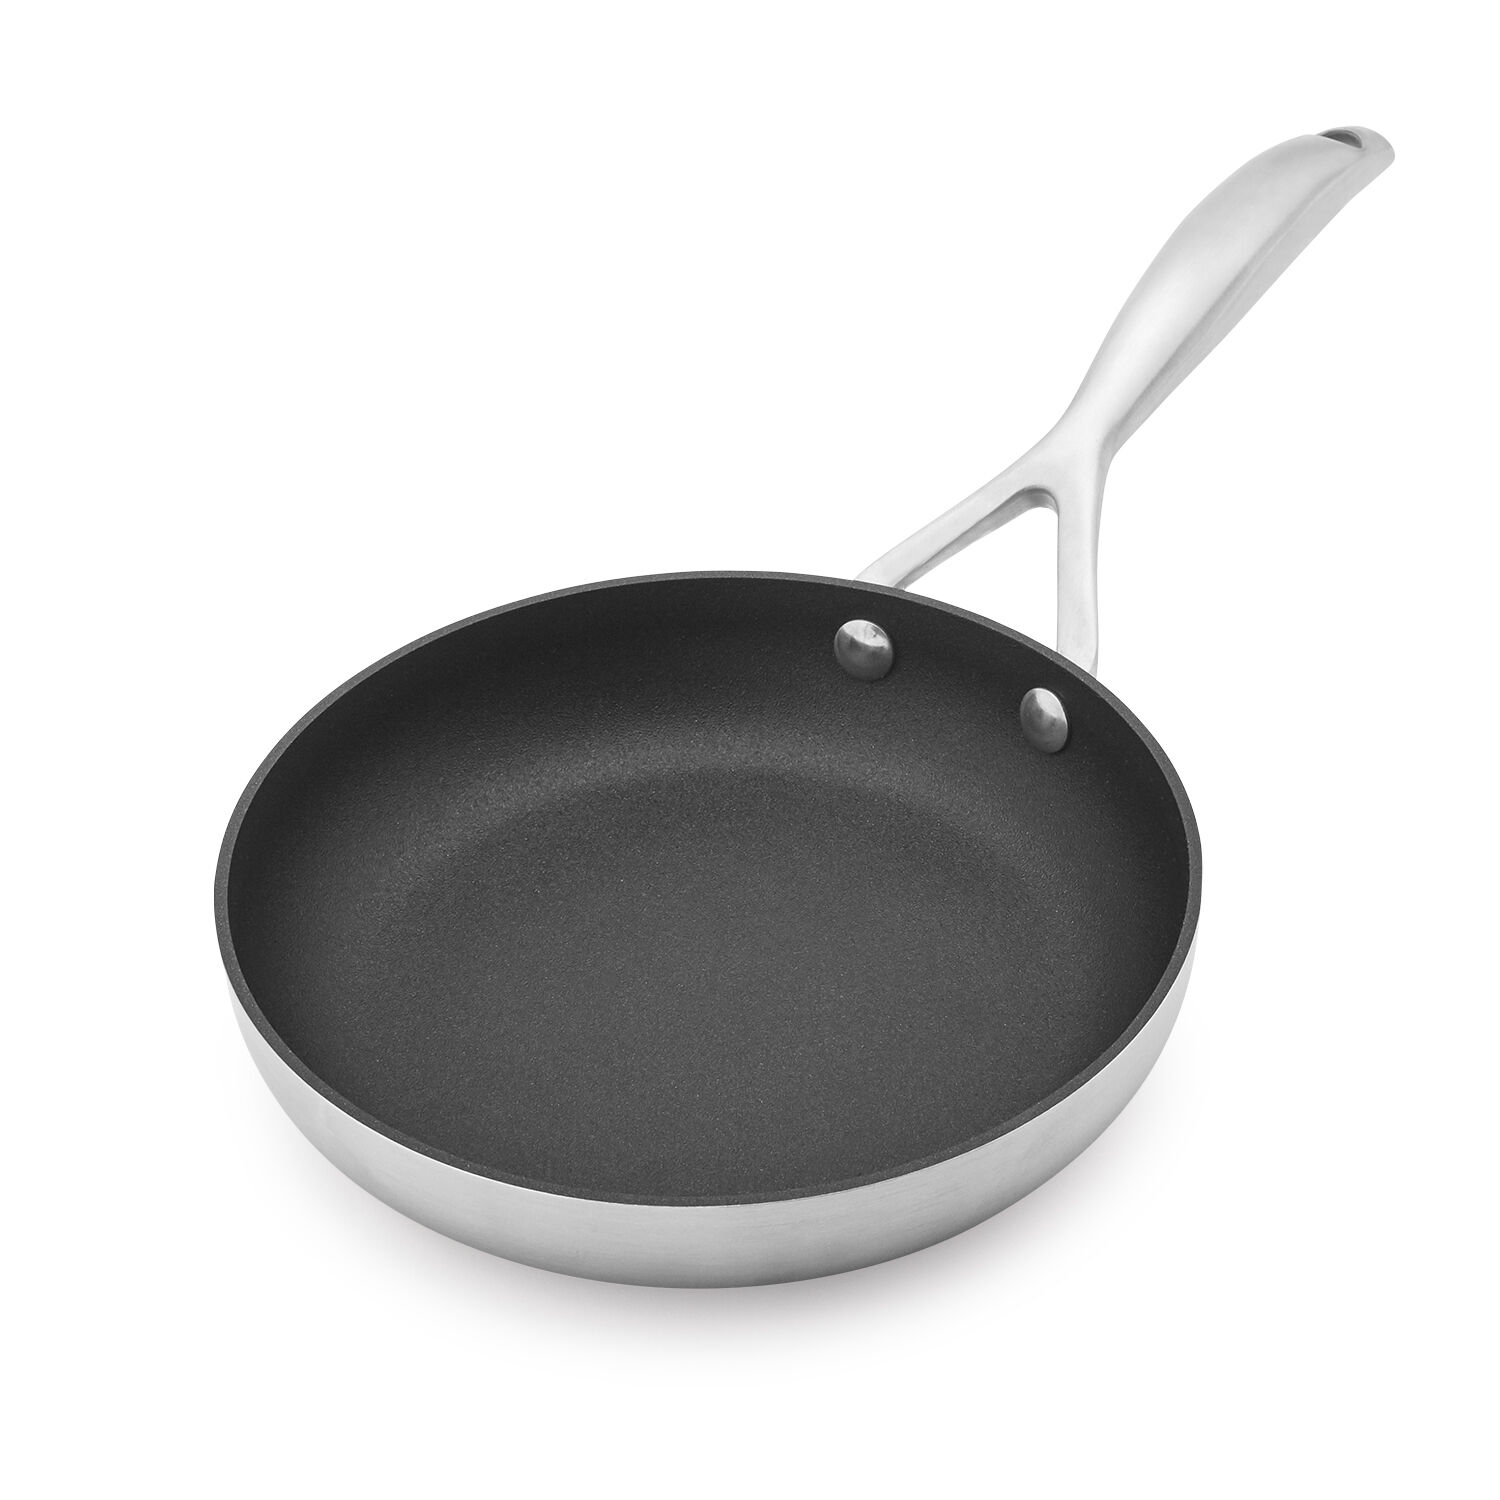 Omelette Flip Skillet Copper Induction Fry Pan Non-Stick Double Side Panini make